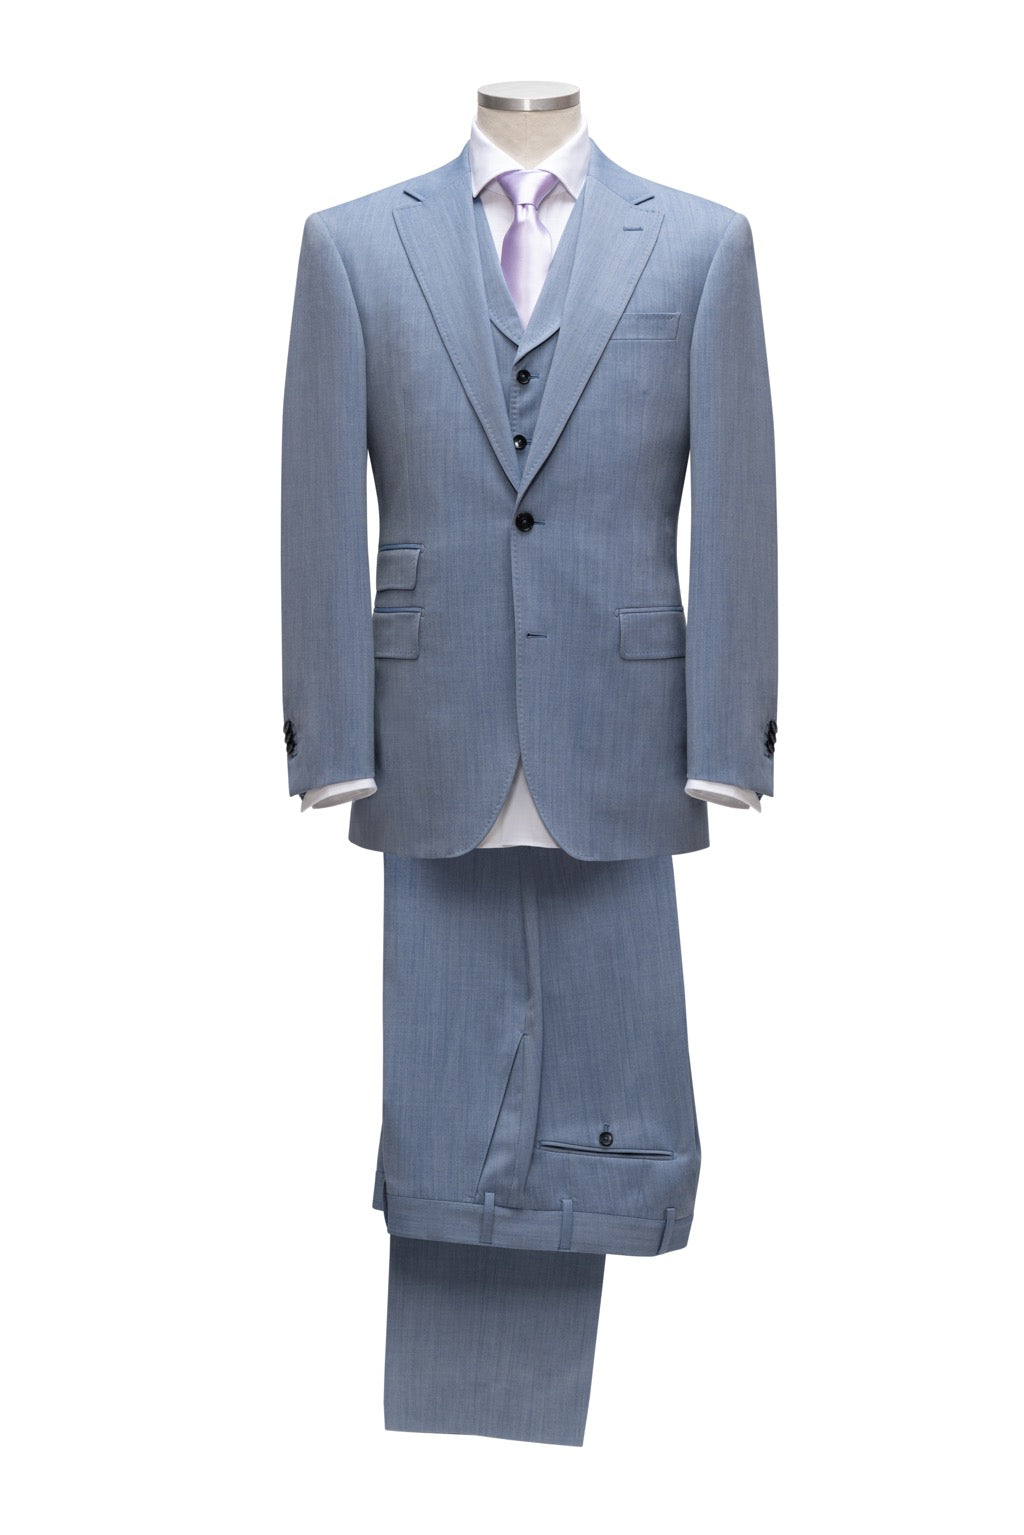 MTO Loro Piana Super 130'S Men's Suit